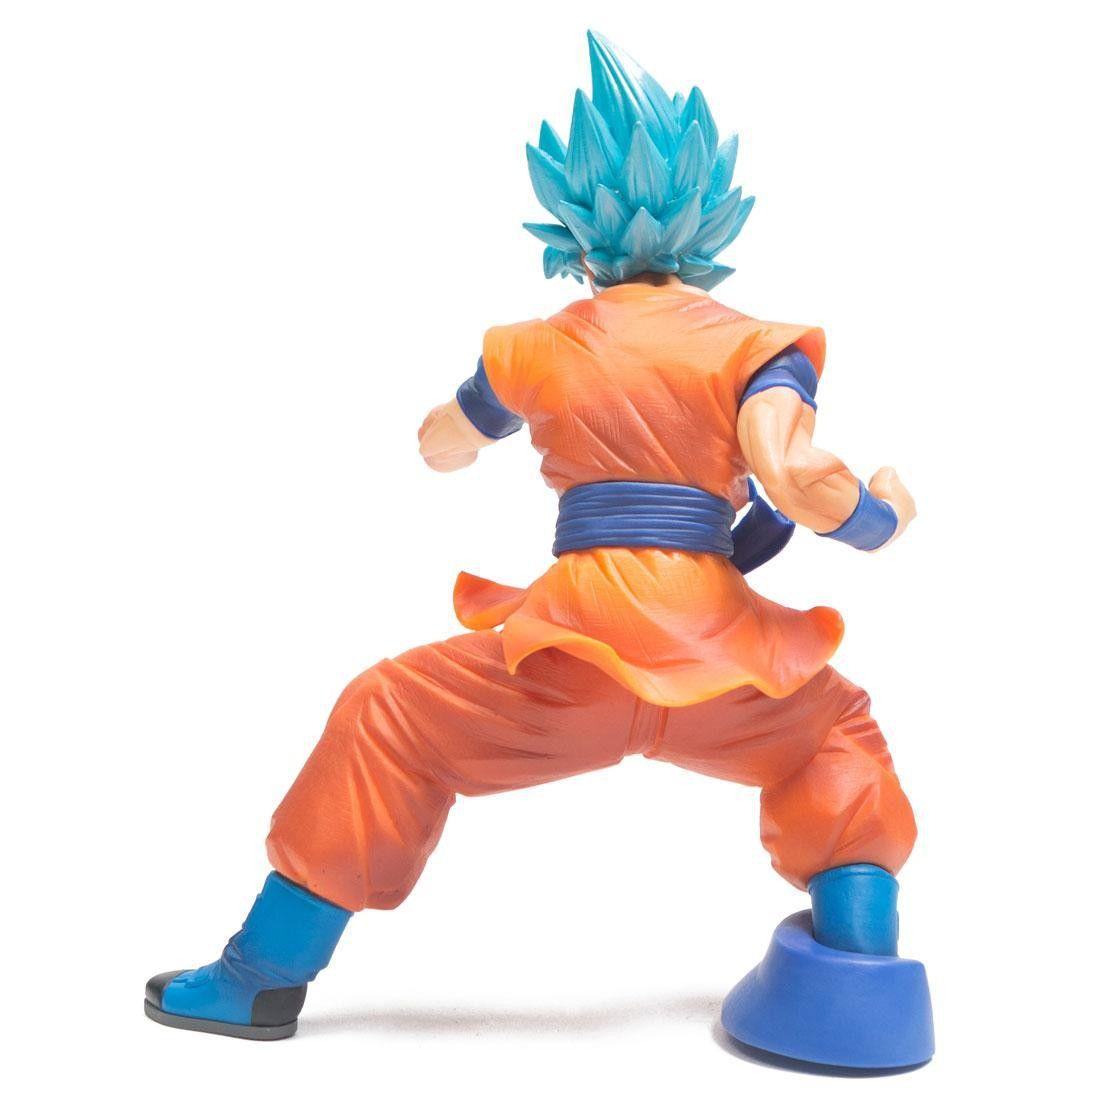 Action Figure Goku Blue Super Saiyajin (Transcendence Art): Dragon Ball Heroes (Boneco Colecionável) - Banpresto